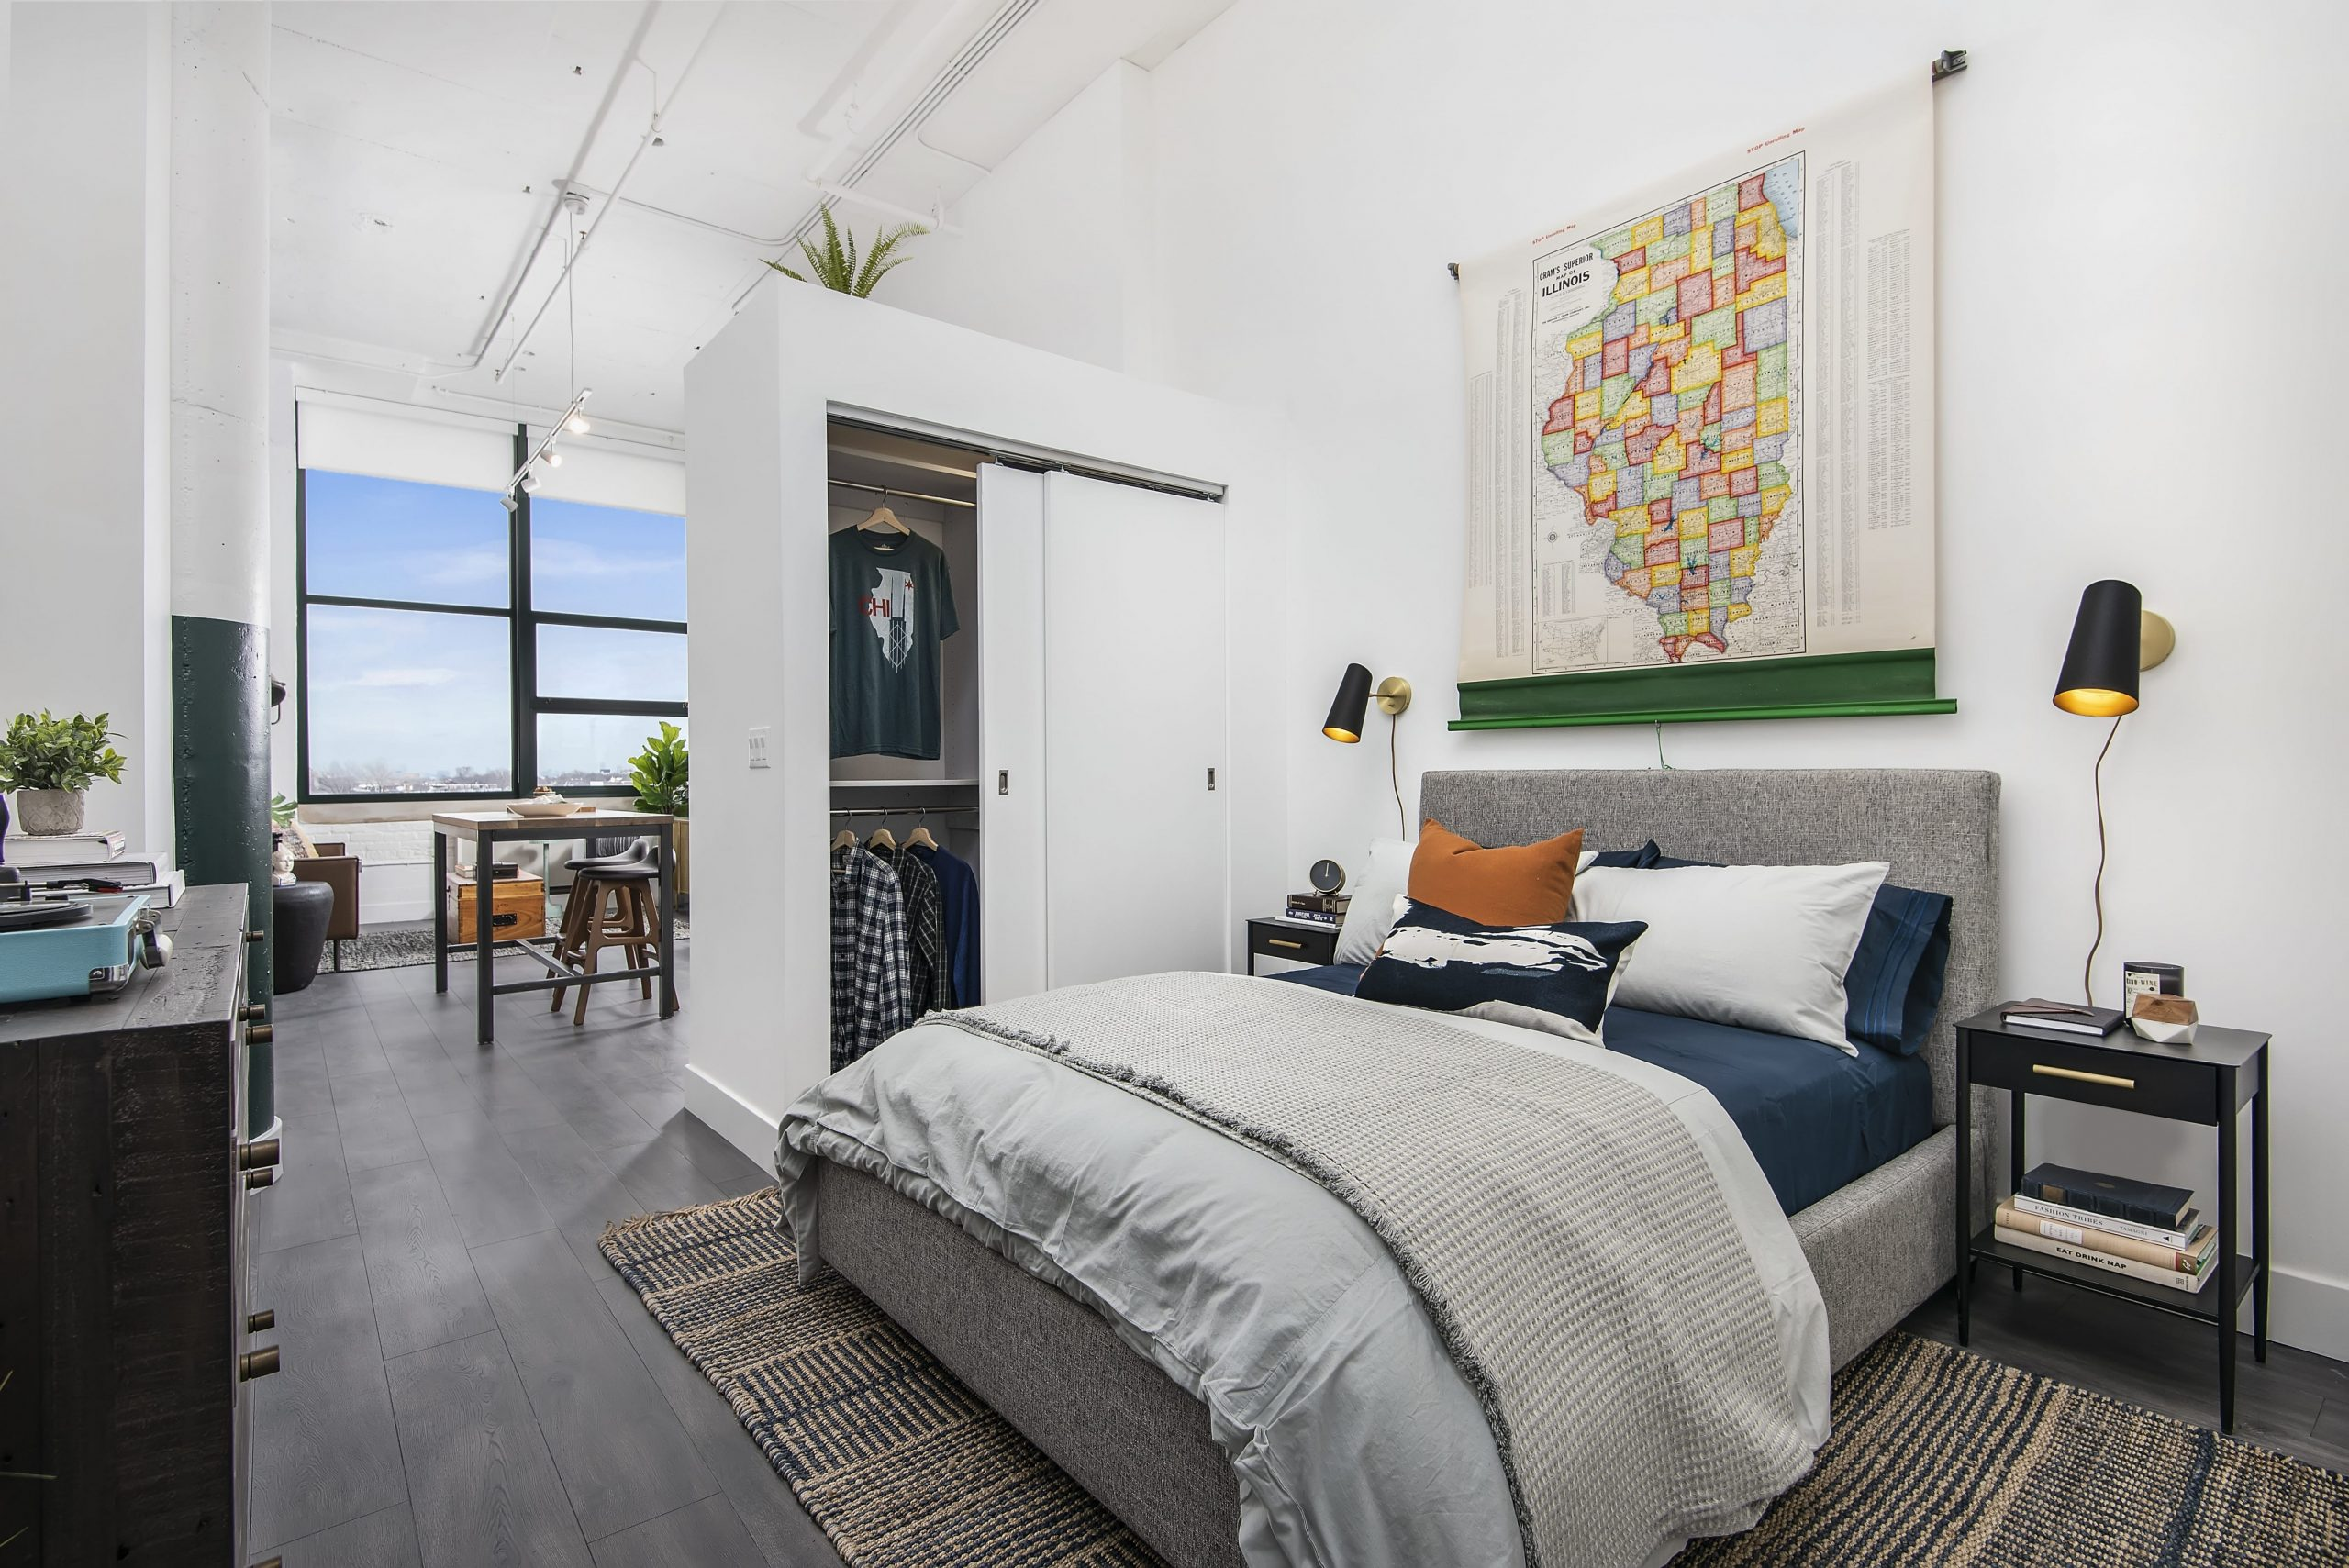 Luxury Small Apartments Design Trends You Should Know - Luxury Living - Apartment Design Trends